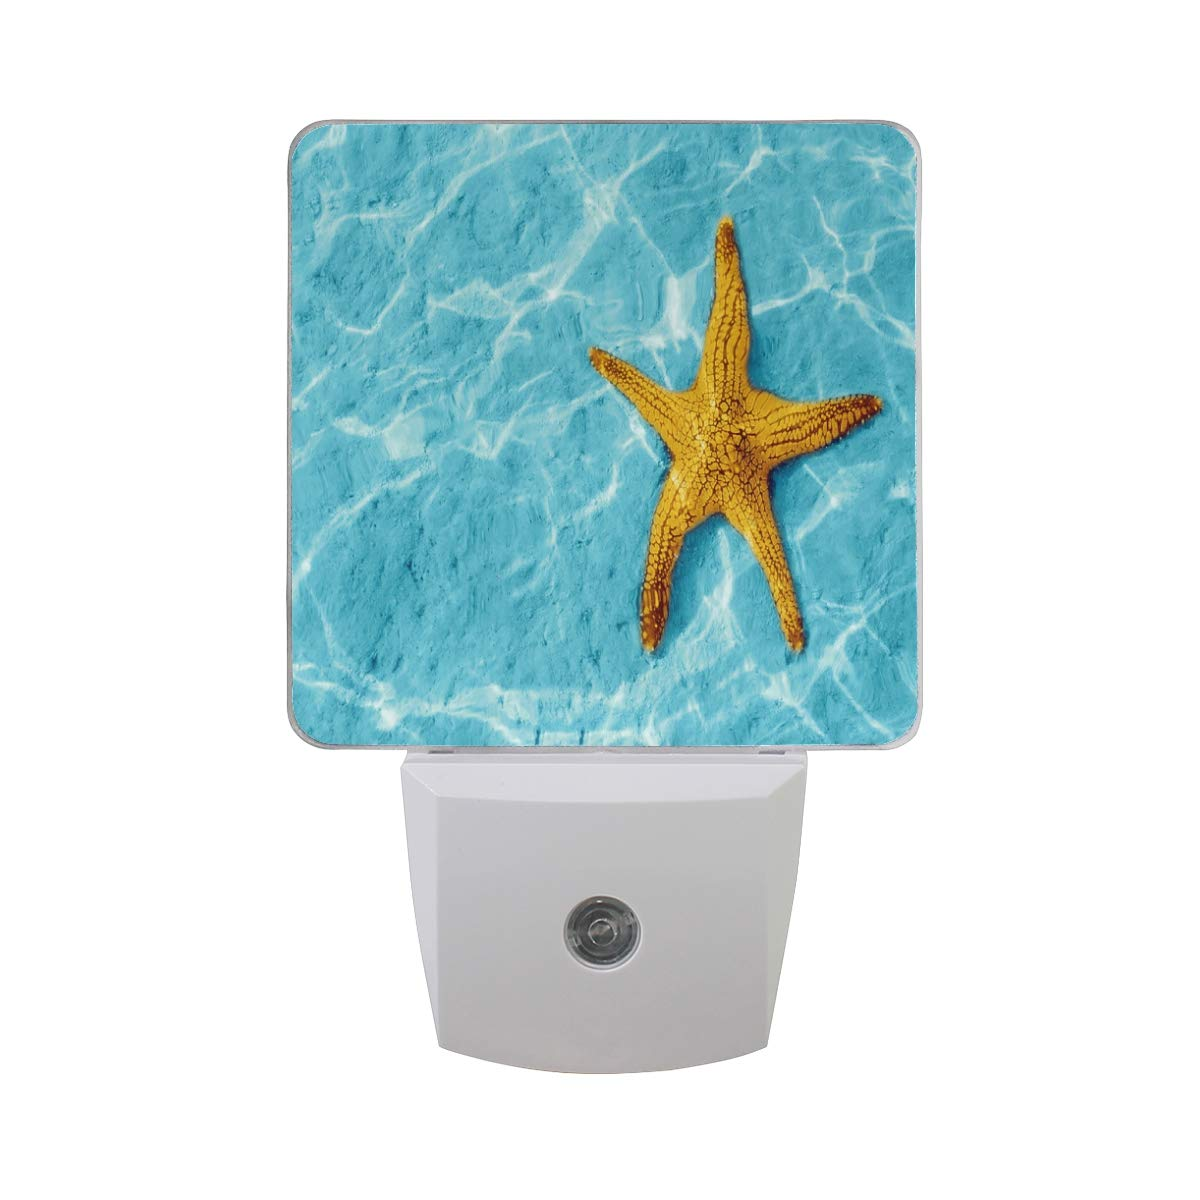 Night Light Starfish in Blue Water Auto Sensor LED Dusk Nightlight Decorative to Dawn Plug in Indoor for Kids Childrens 2 Pack